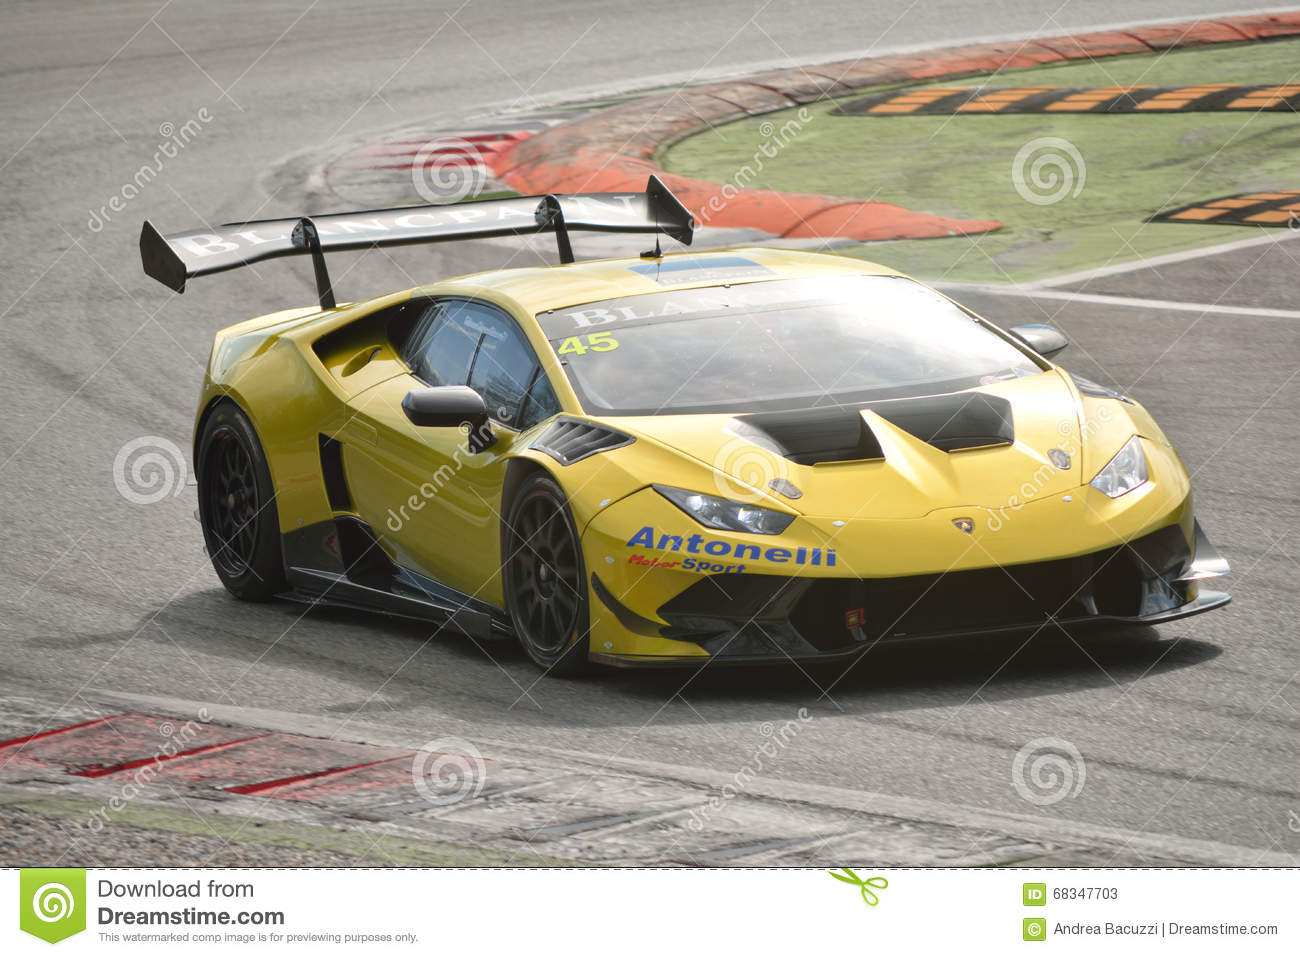 lamborghini hurac n super trofeo 2016 at monza editorial stock photo image 68347703. Black Bedroom Furniture Sets. Home Design Ideas